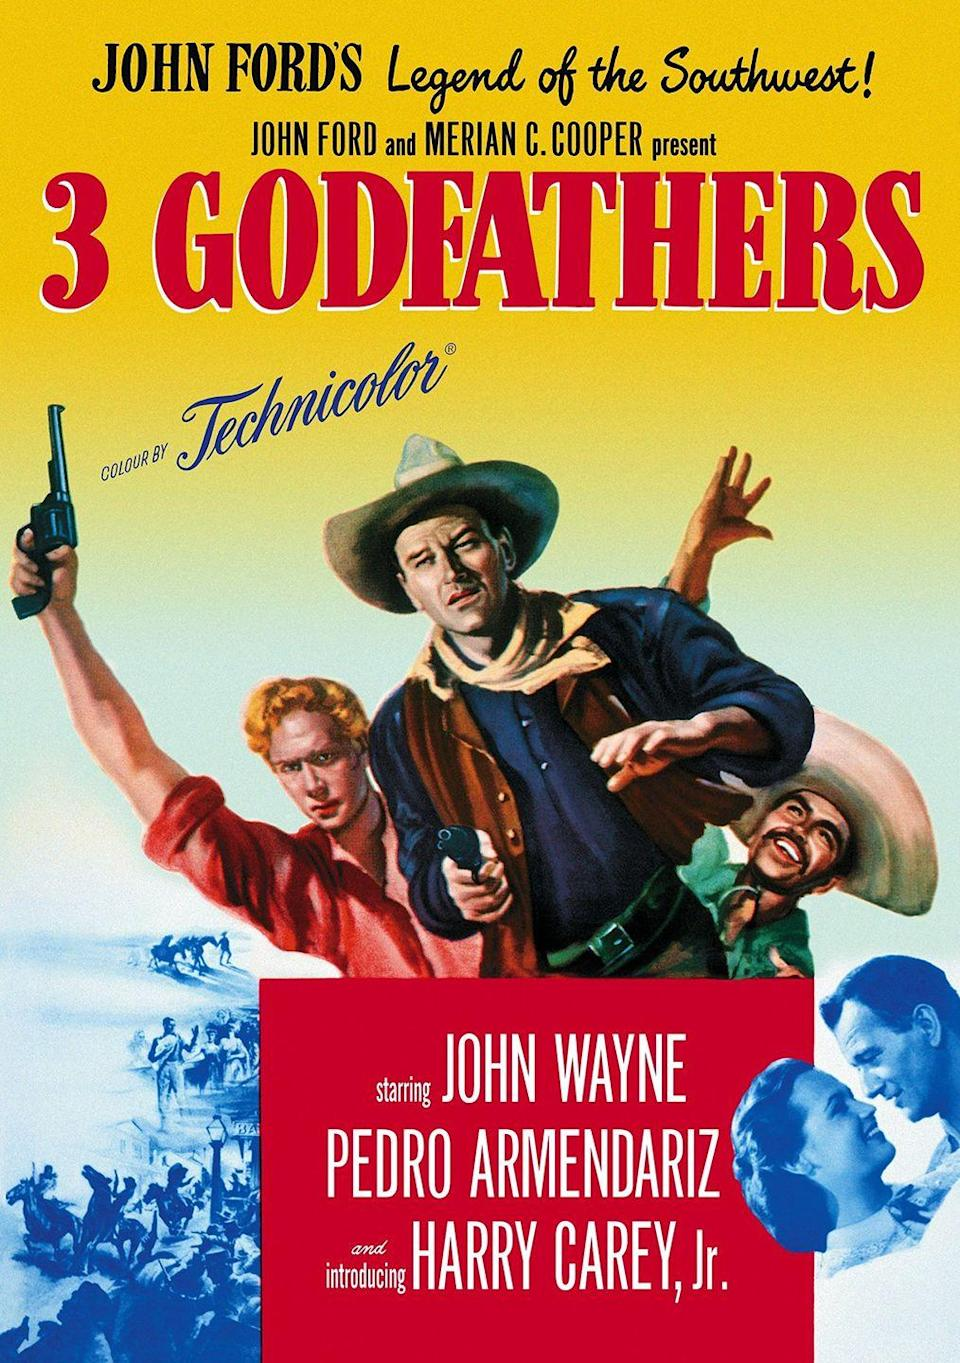 """<p>There aren't many Christmas Westerns, but this 1948 John Wayne movie about the redemption of three outlaws helps fill that void.</p><p><a class=""""link rapid-noclick-resp"""" href=""""https://www.amazon.com/3-Godfathers-John-Wayne/dp/B00ETG9EAI/?tag=syn-yahoo-20&ascsubtag=%5Bartid%7C10055.g.1315%5Bsrc%7Cyahoo-us"""" rel=""""nofollow noopener"""" target=""""_blank"""" data-ylk=""""slk:WATCH NOW"""">WATCH NOW</a></p>"""